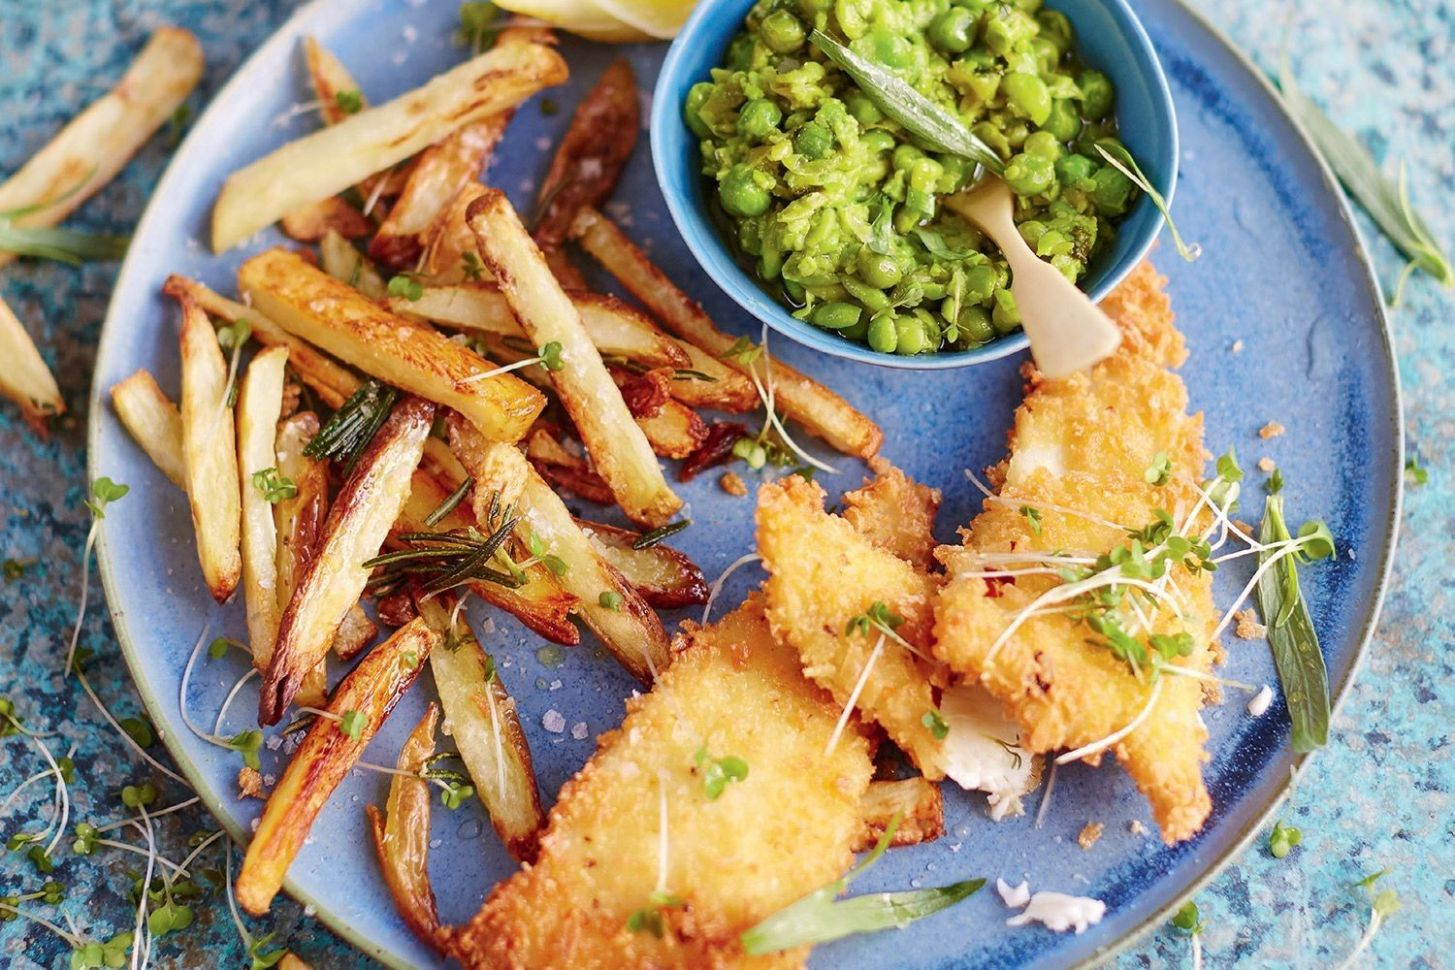 Jamie Oliver's fish and cheat's chips with tarragon mushy peas